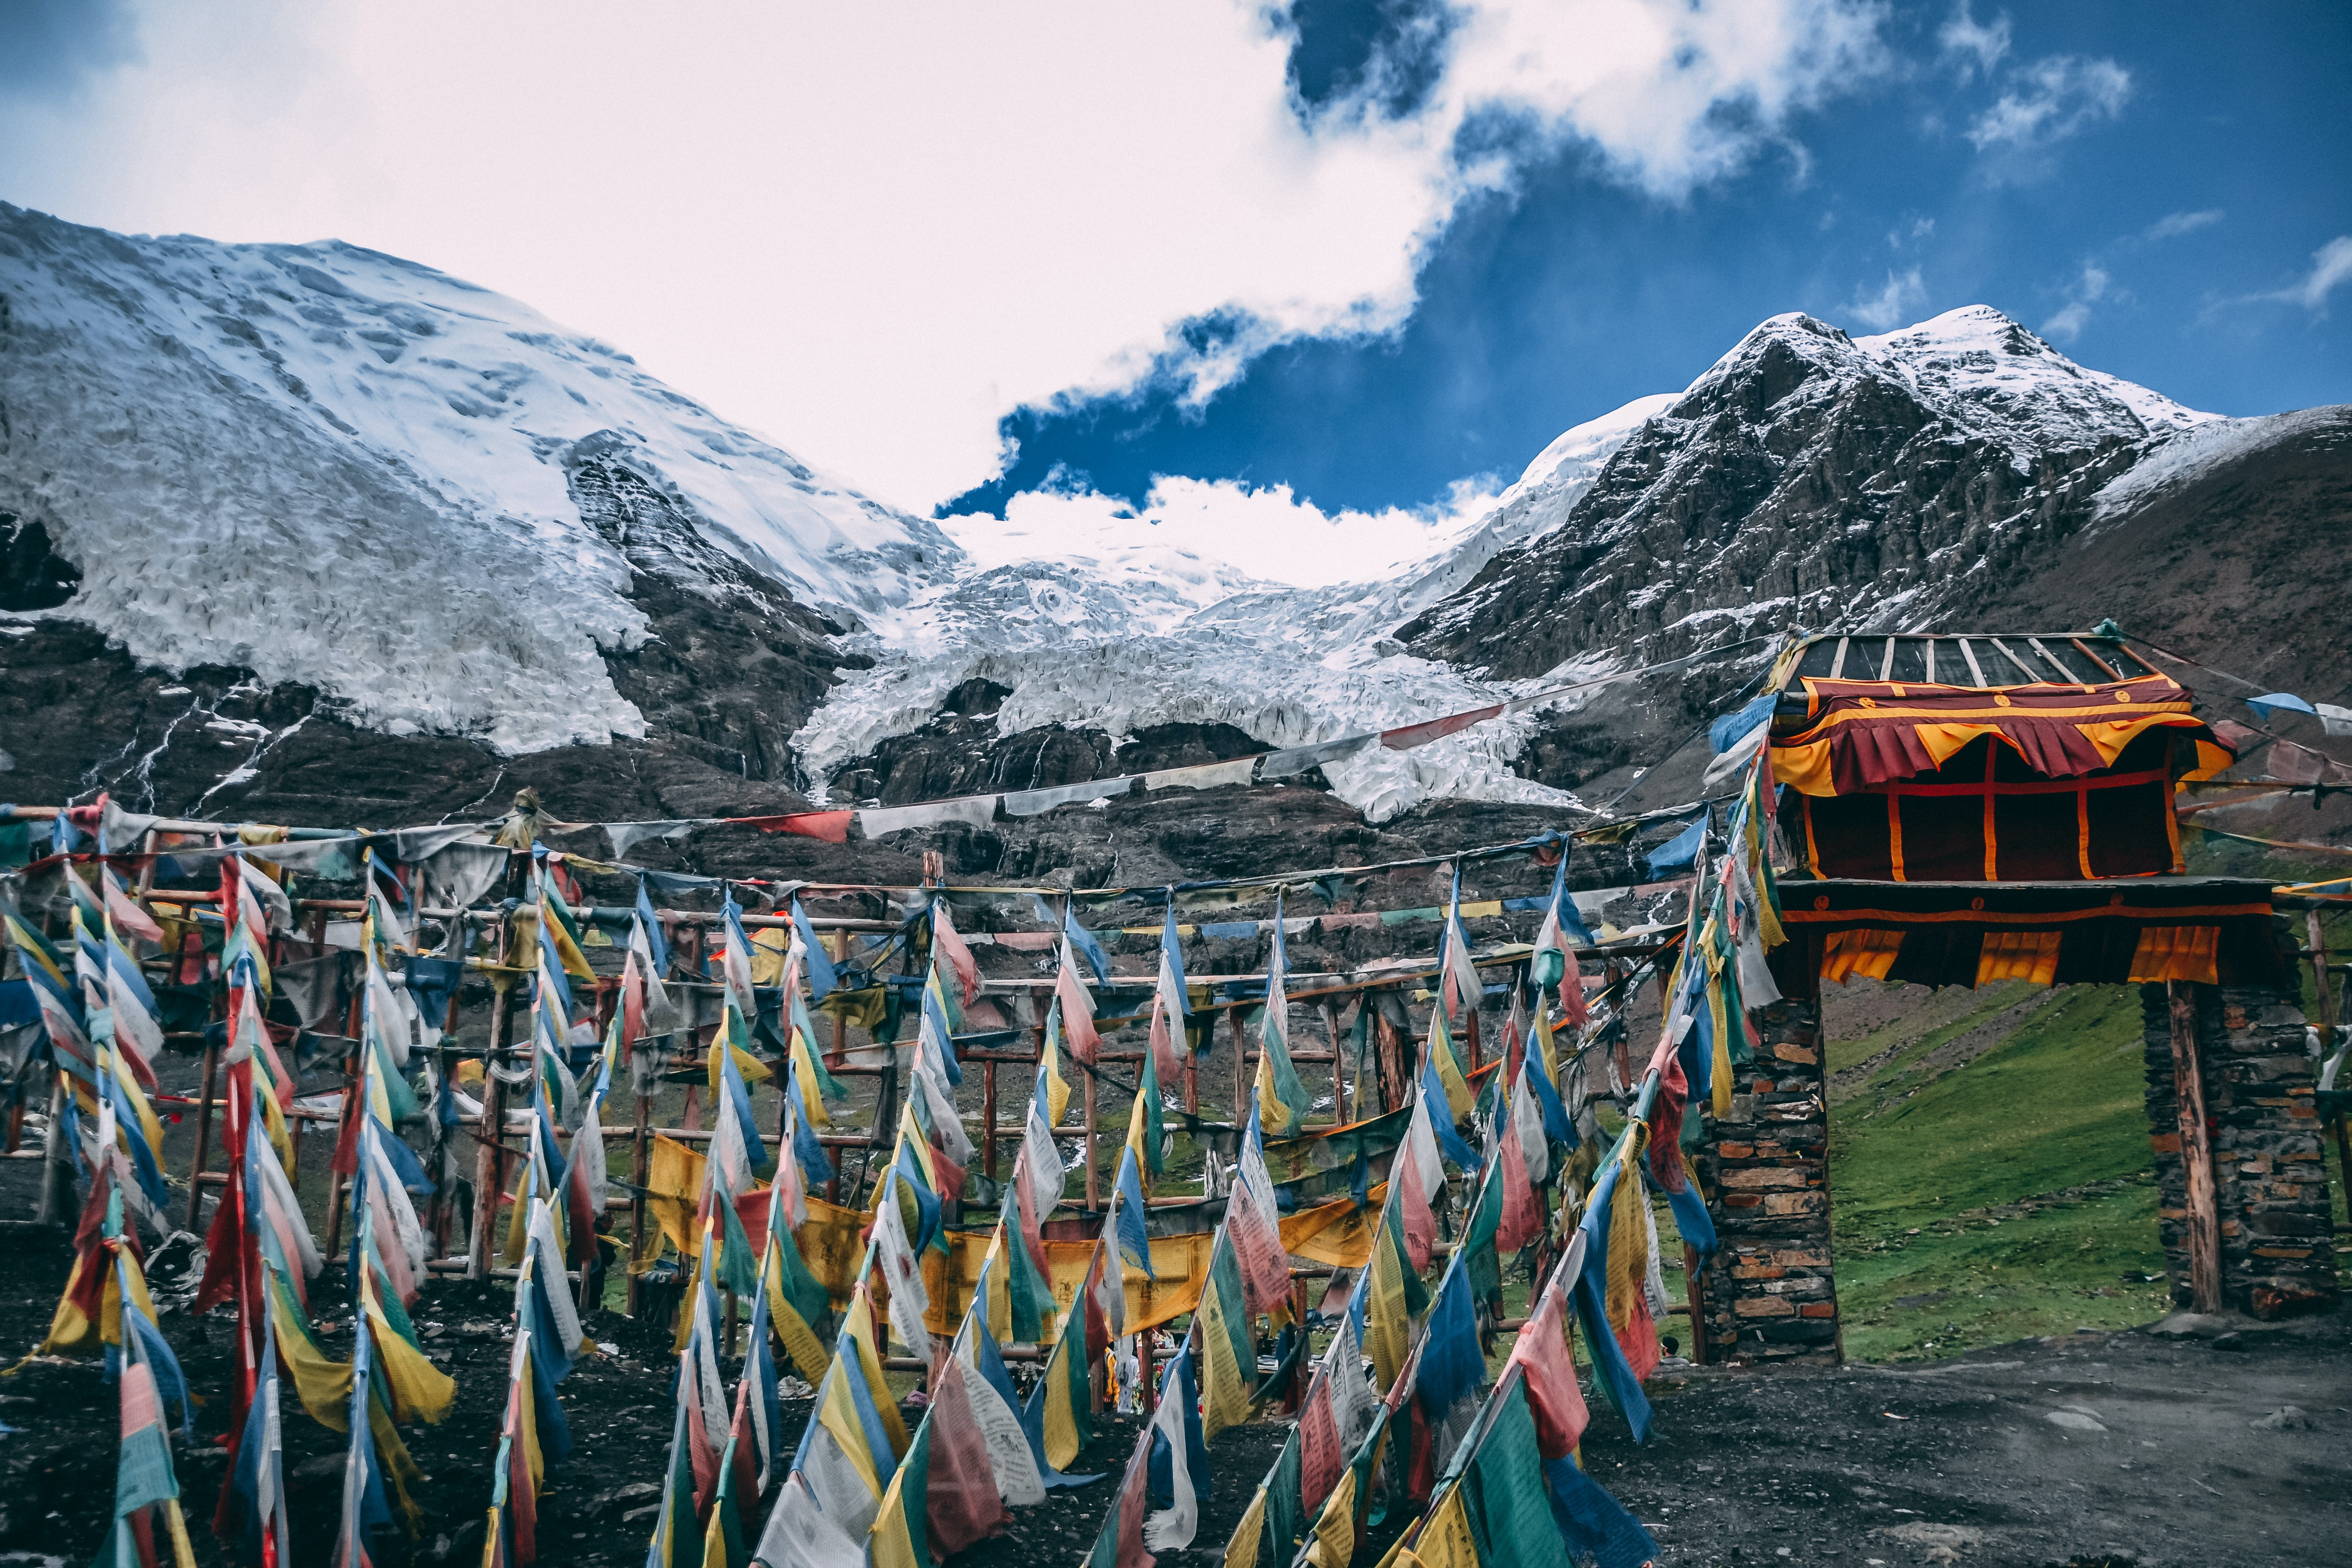 Colorful flags near a stone entryway to a mountain landscape in Tibet